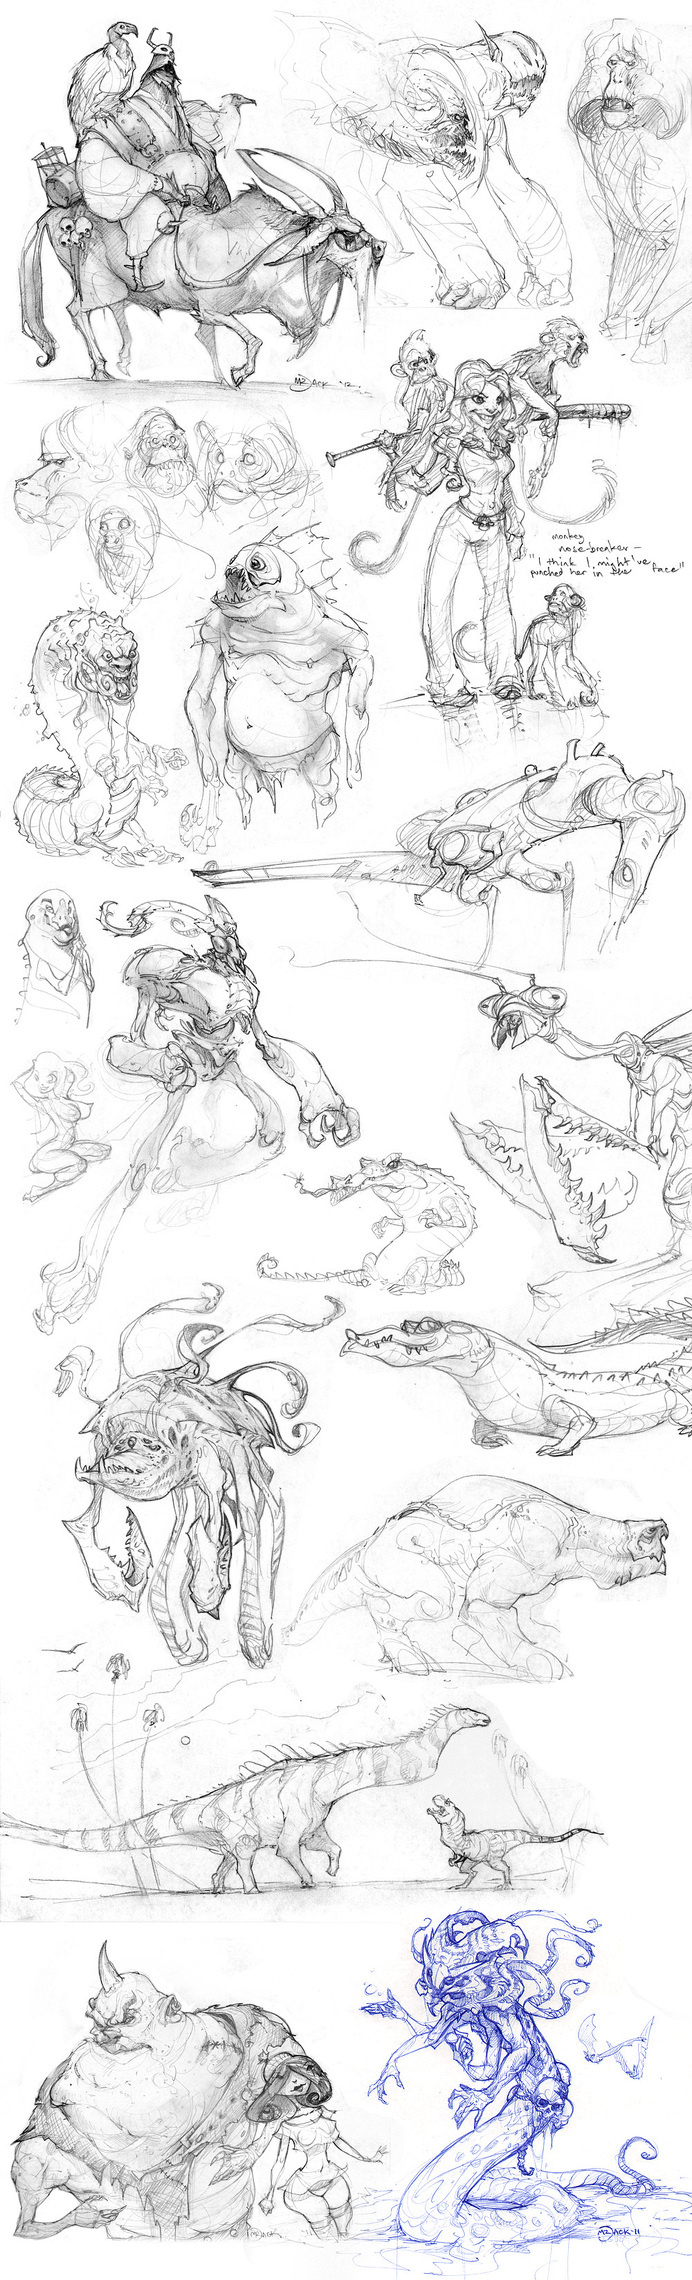 Another Pile by Mr--Jack #fantasy #design #drawing #illustration #art #character #sketch